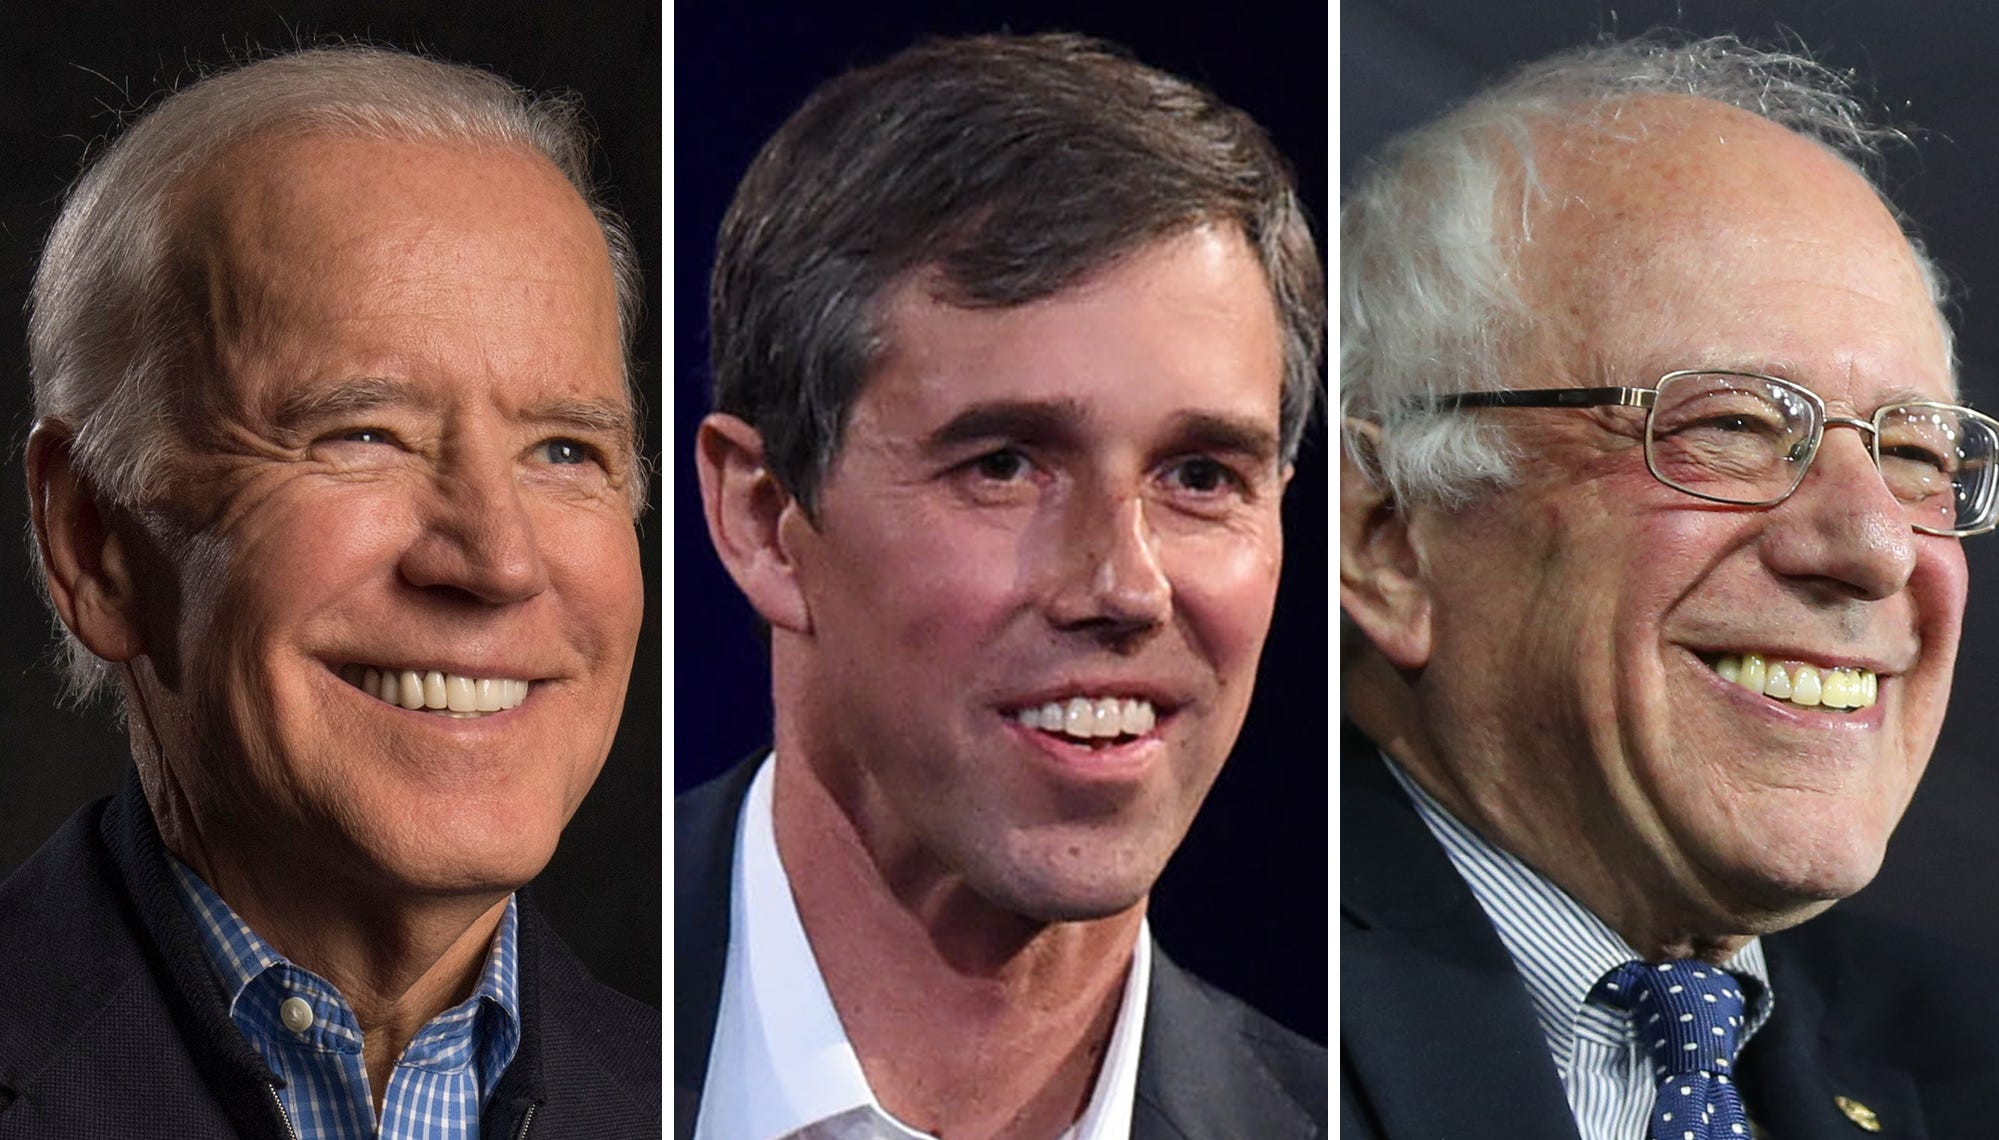 Joe Biden, Beto O'Rourke and Bernie Sanders